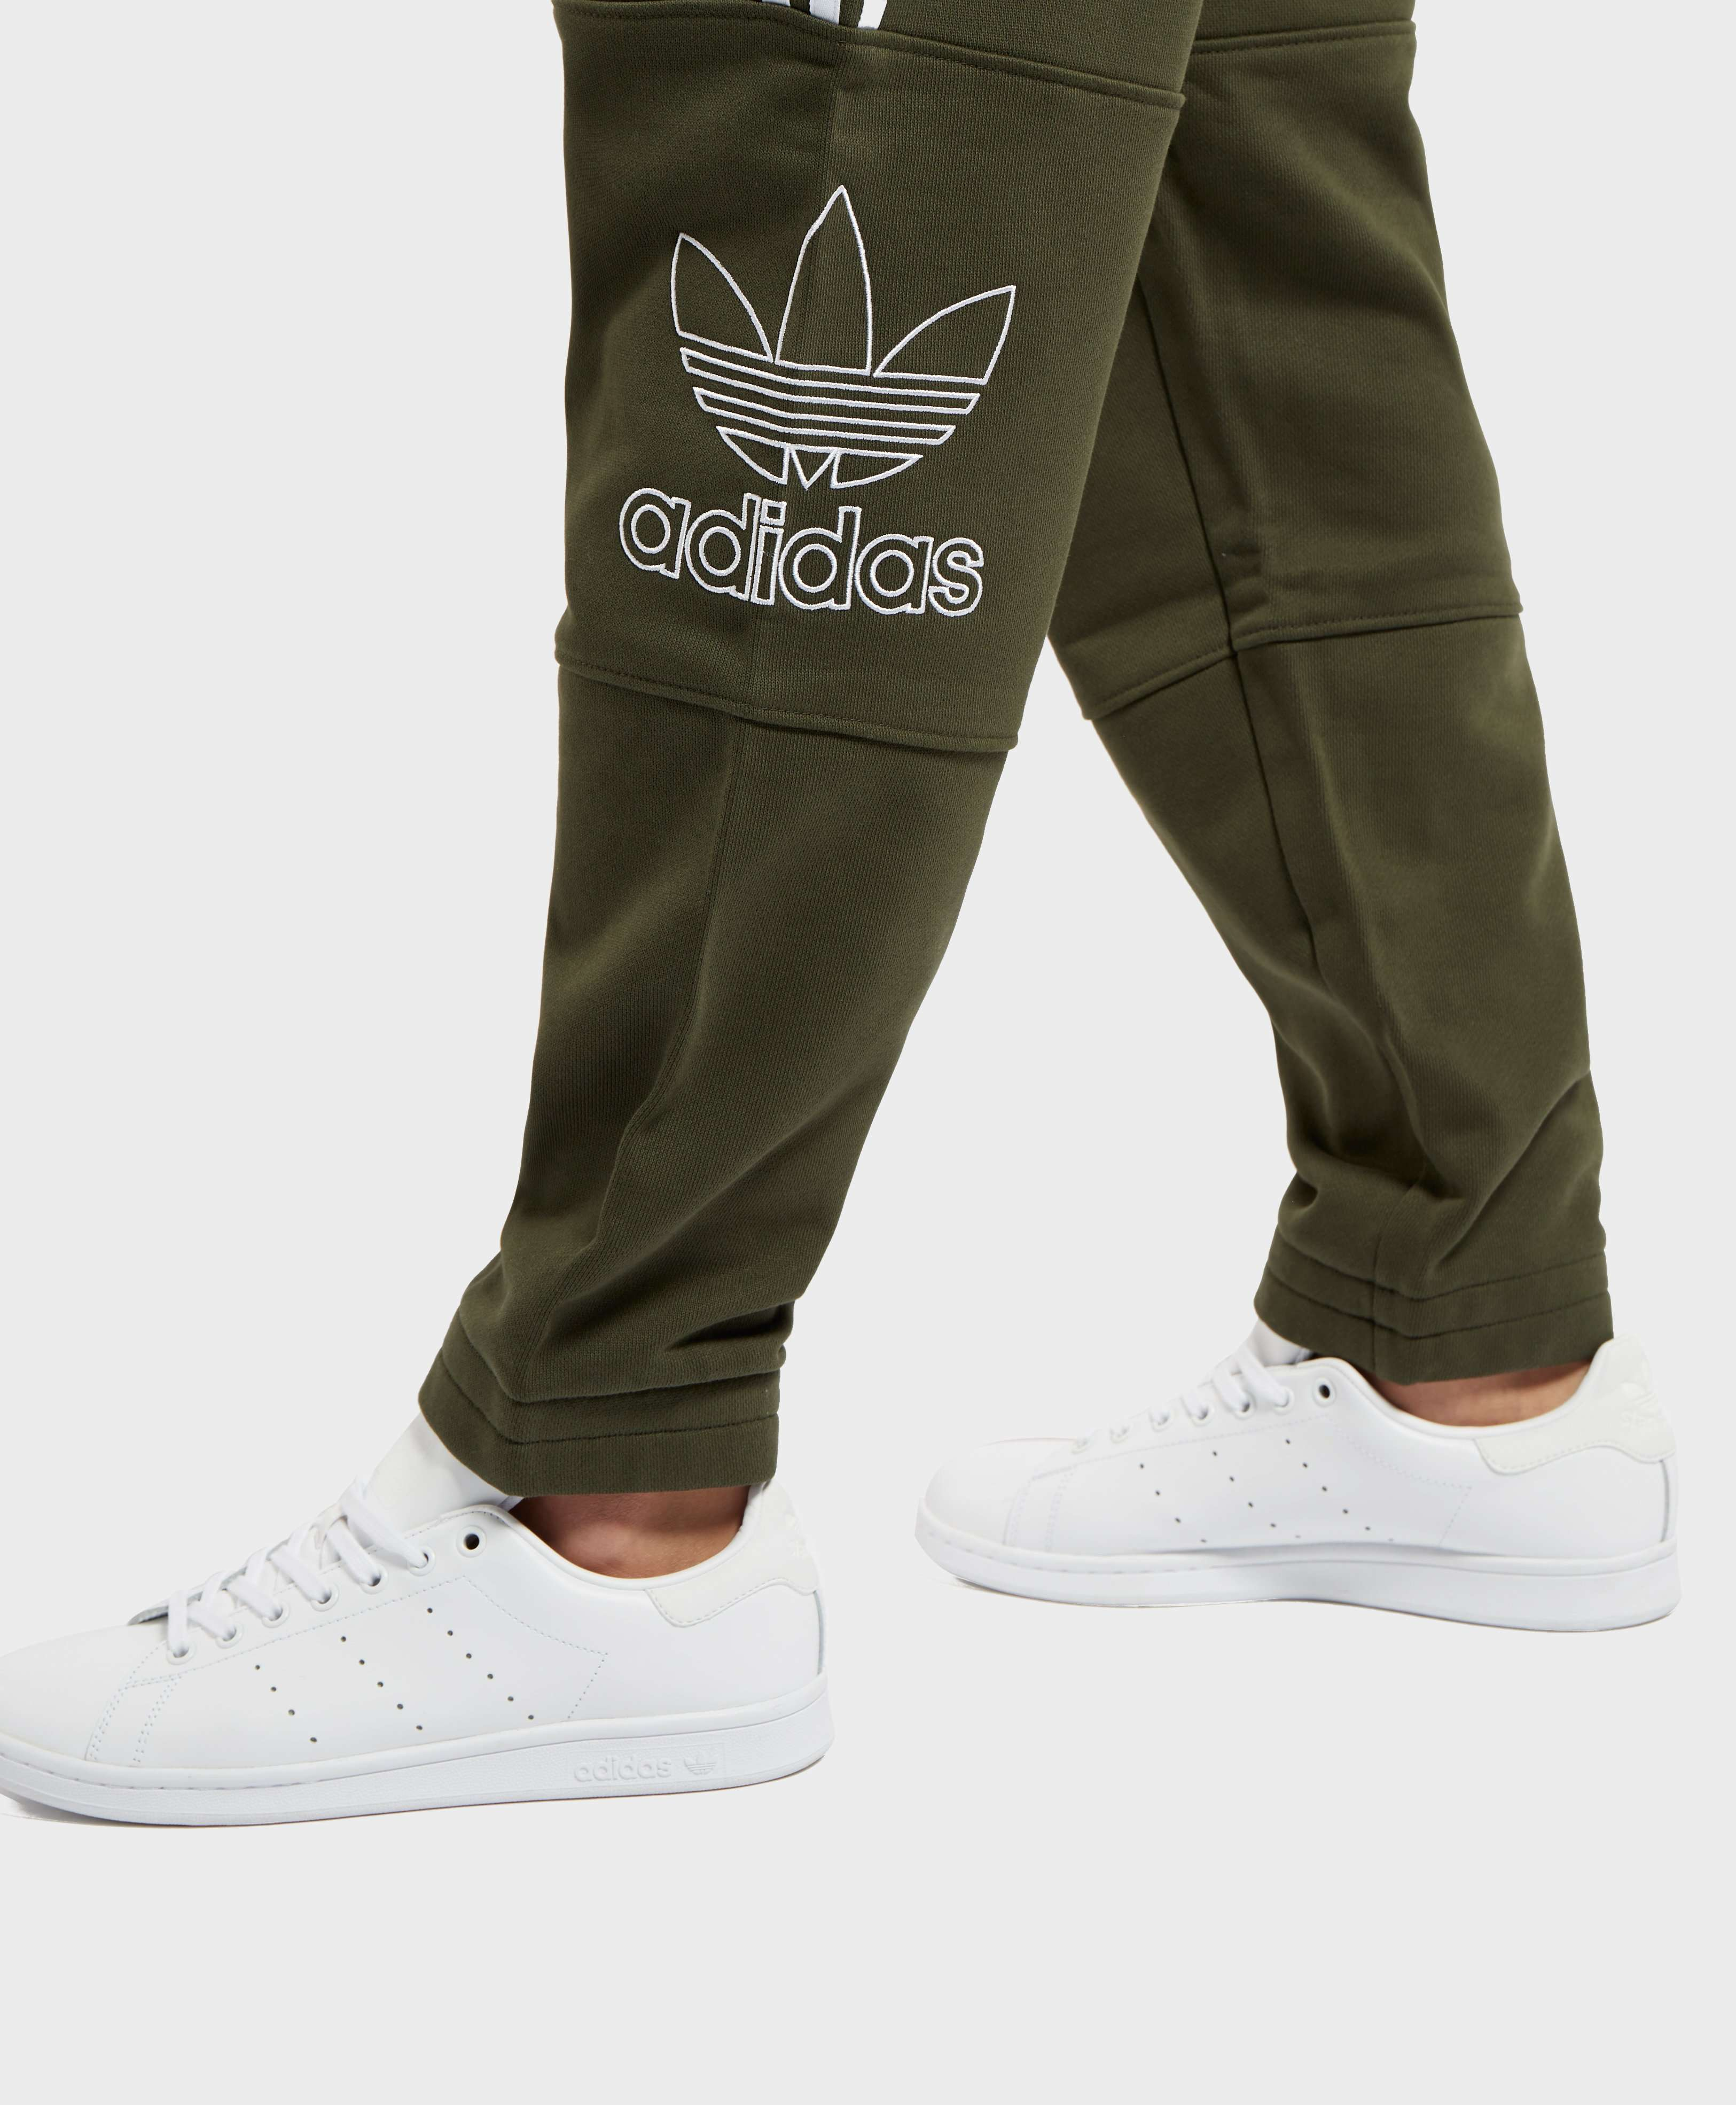 adidas Originals Outline Track Pants